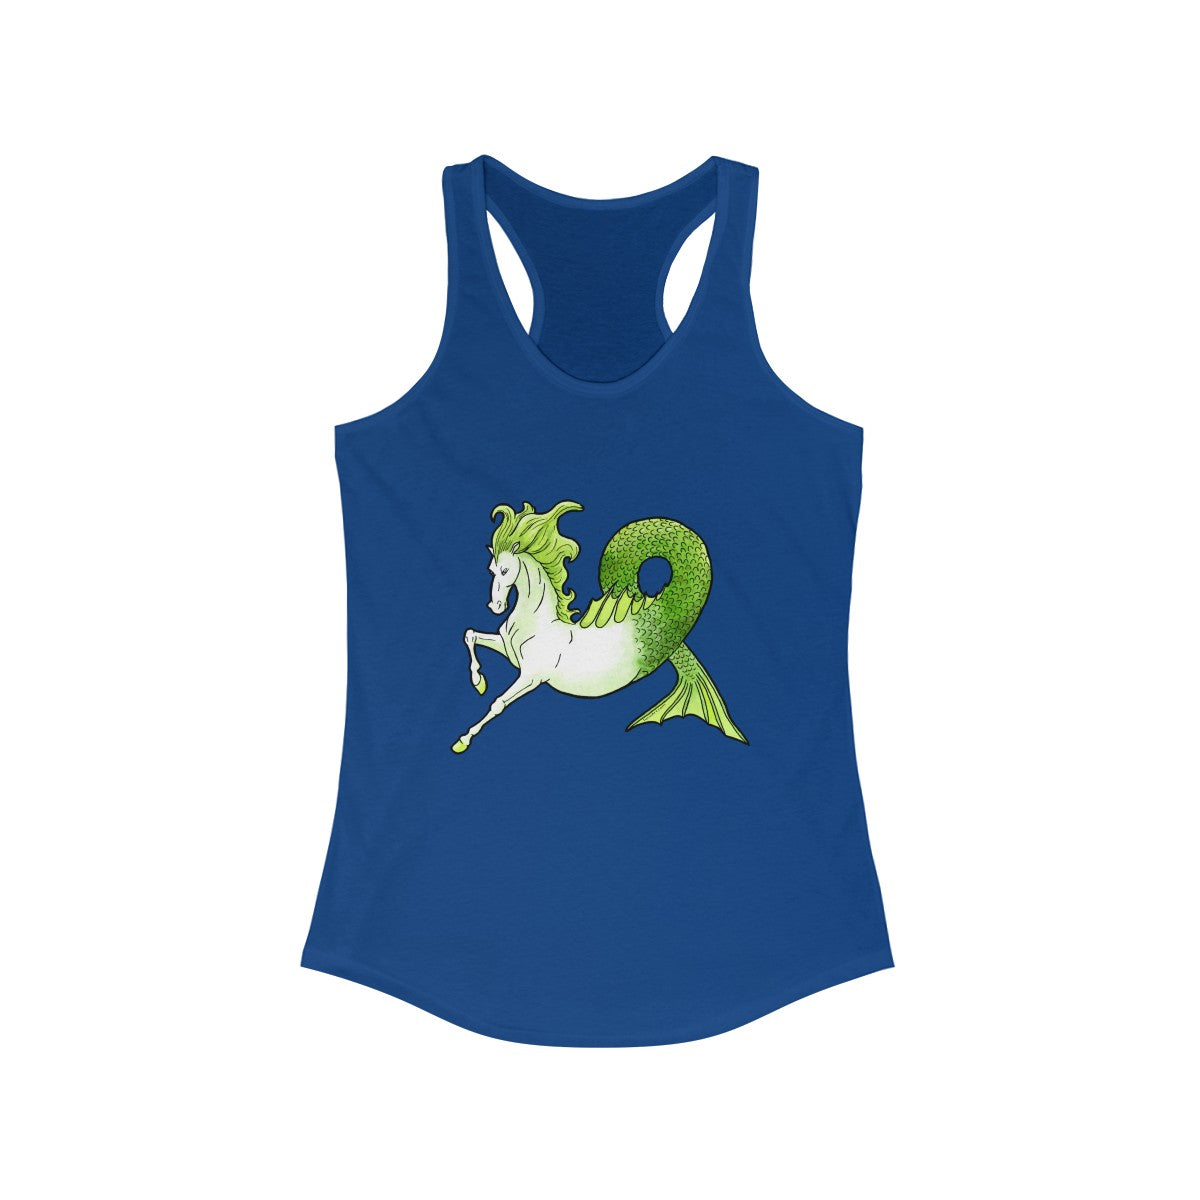 Hippocamp Kelpie Water Horse on Royal Blue Women's Racerback Tank